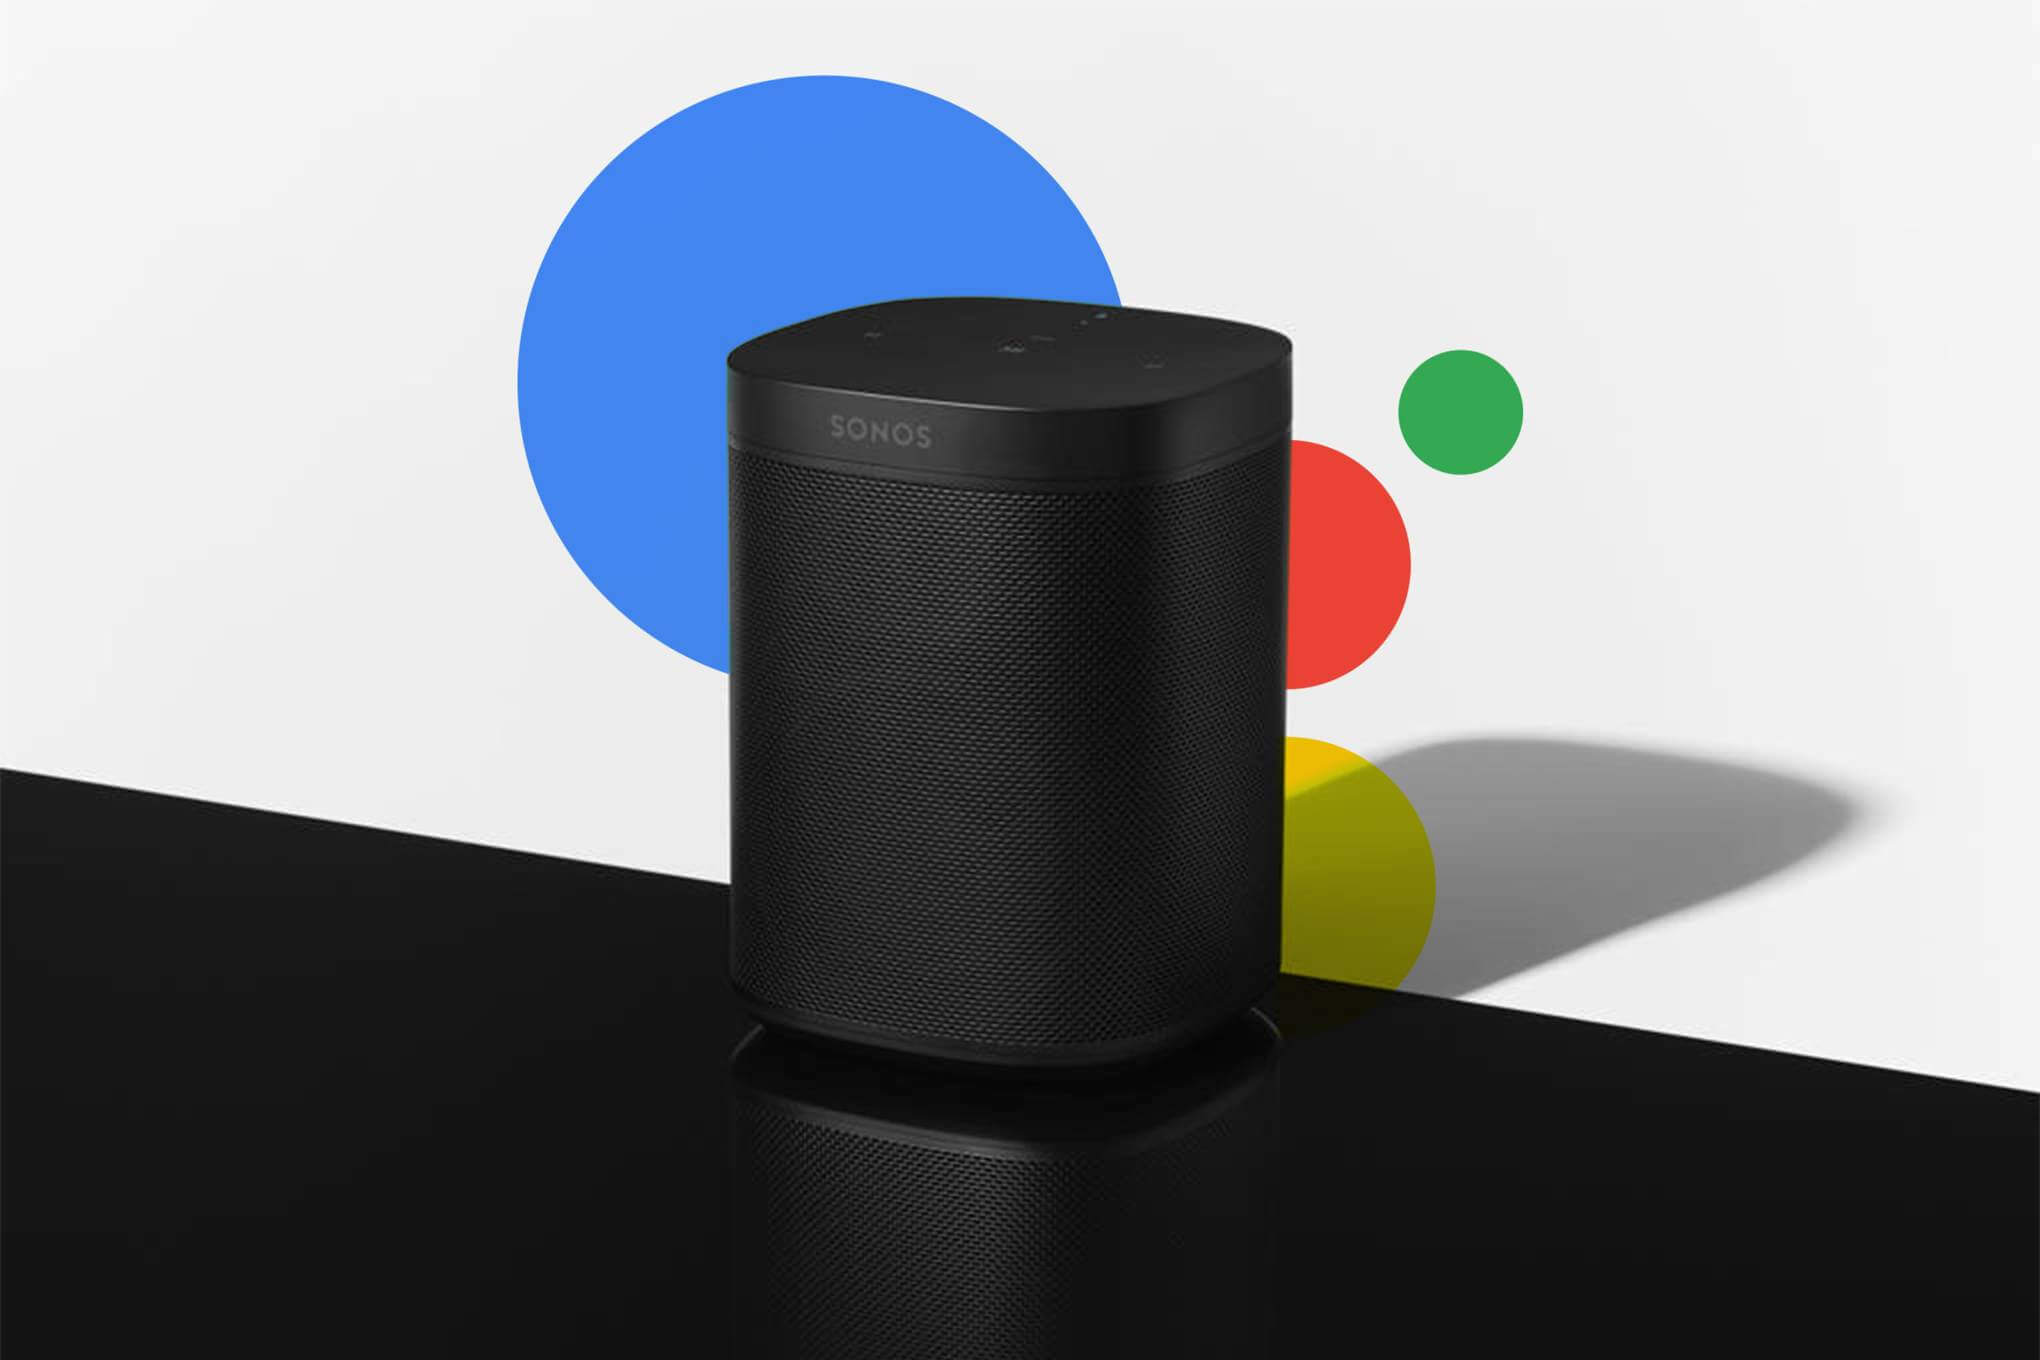 Sonos is suing Google for allegedly copying speaker technology